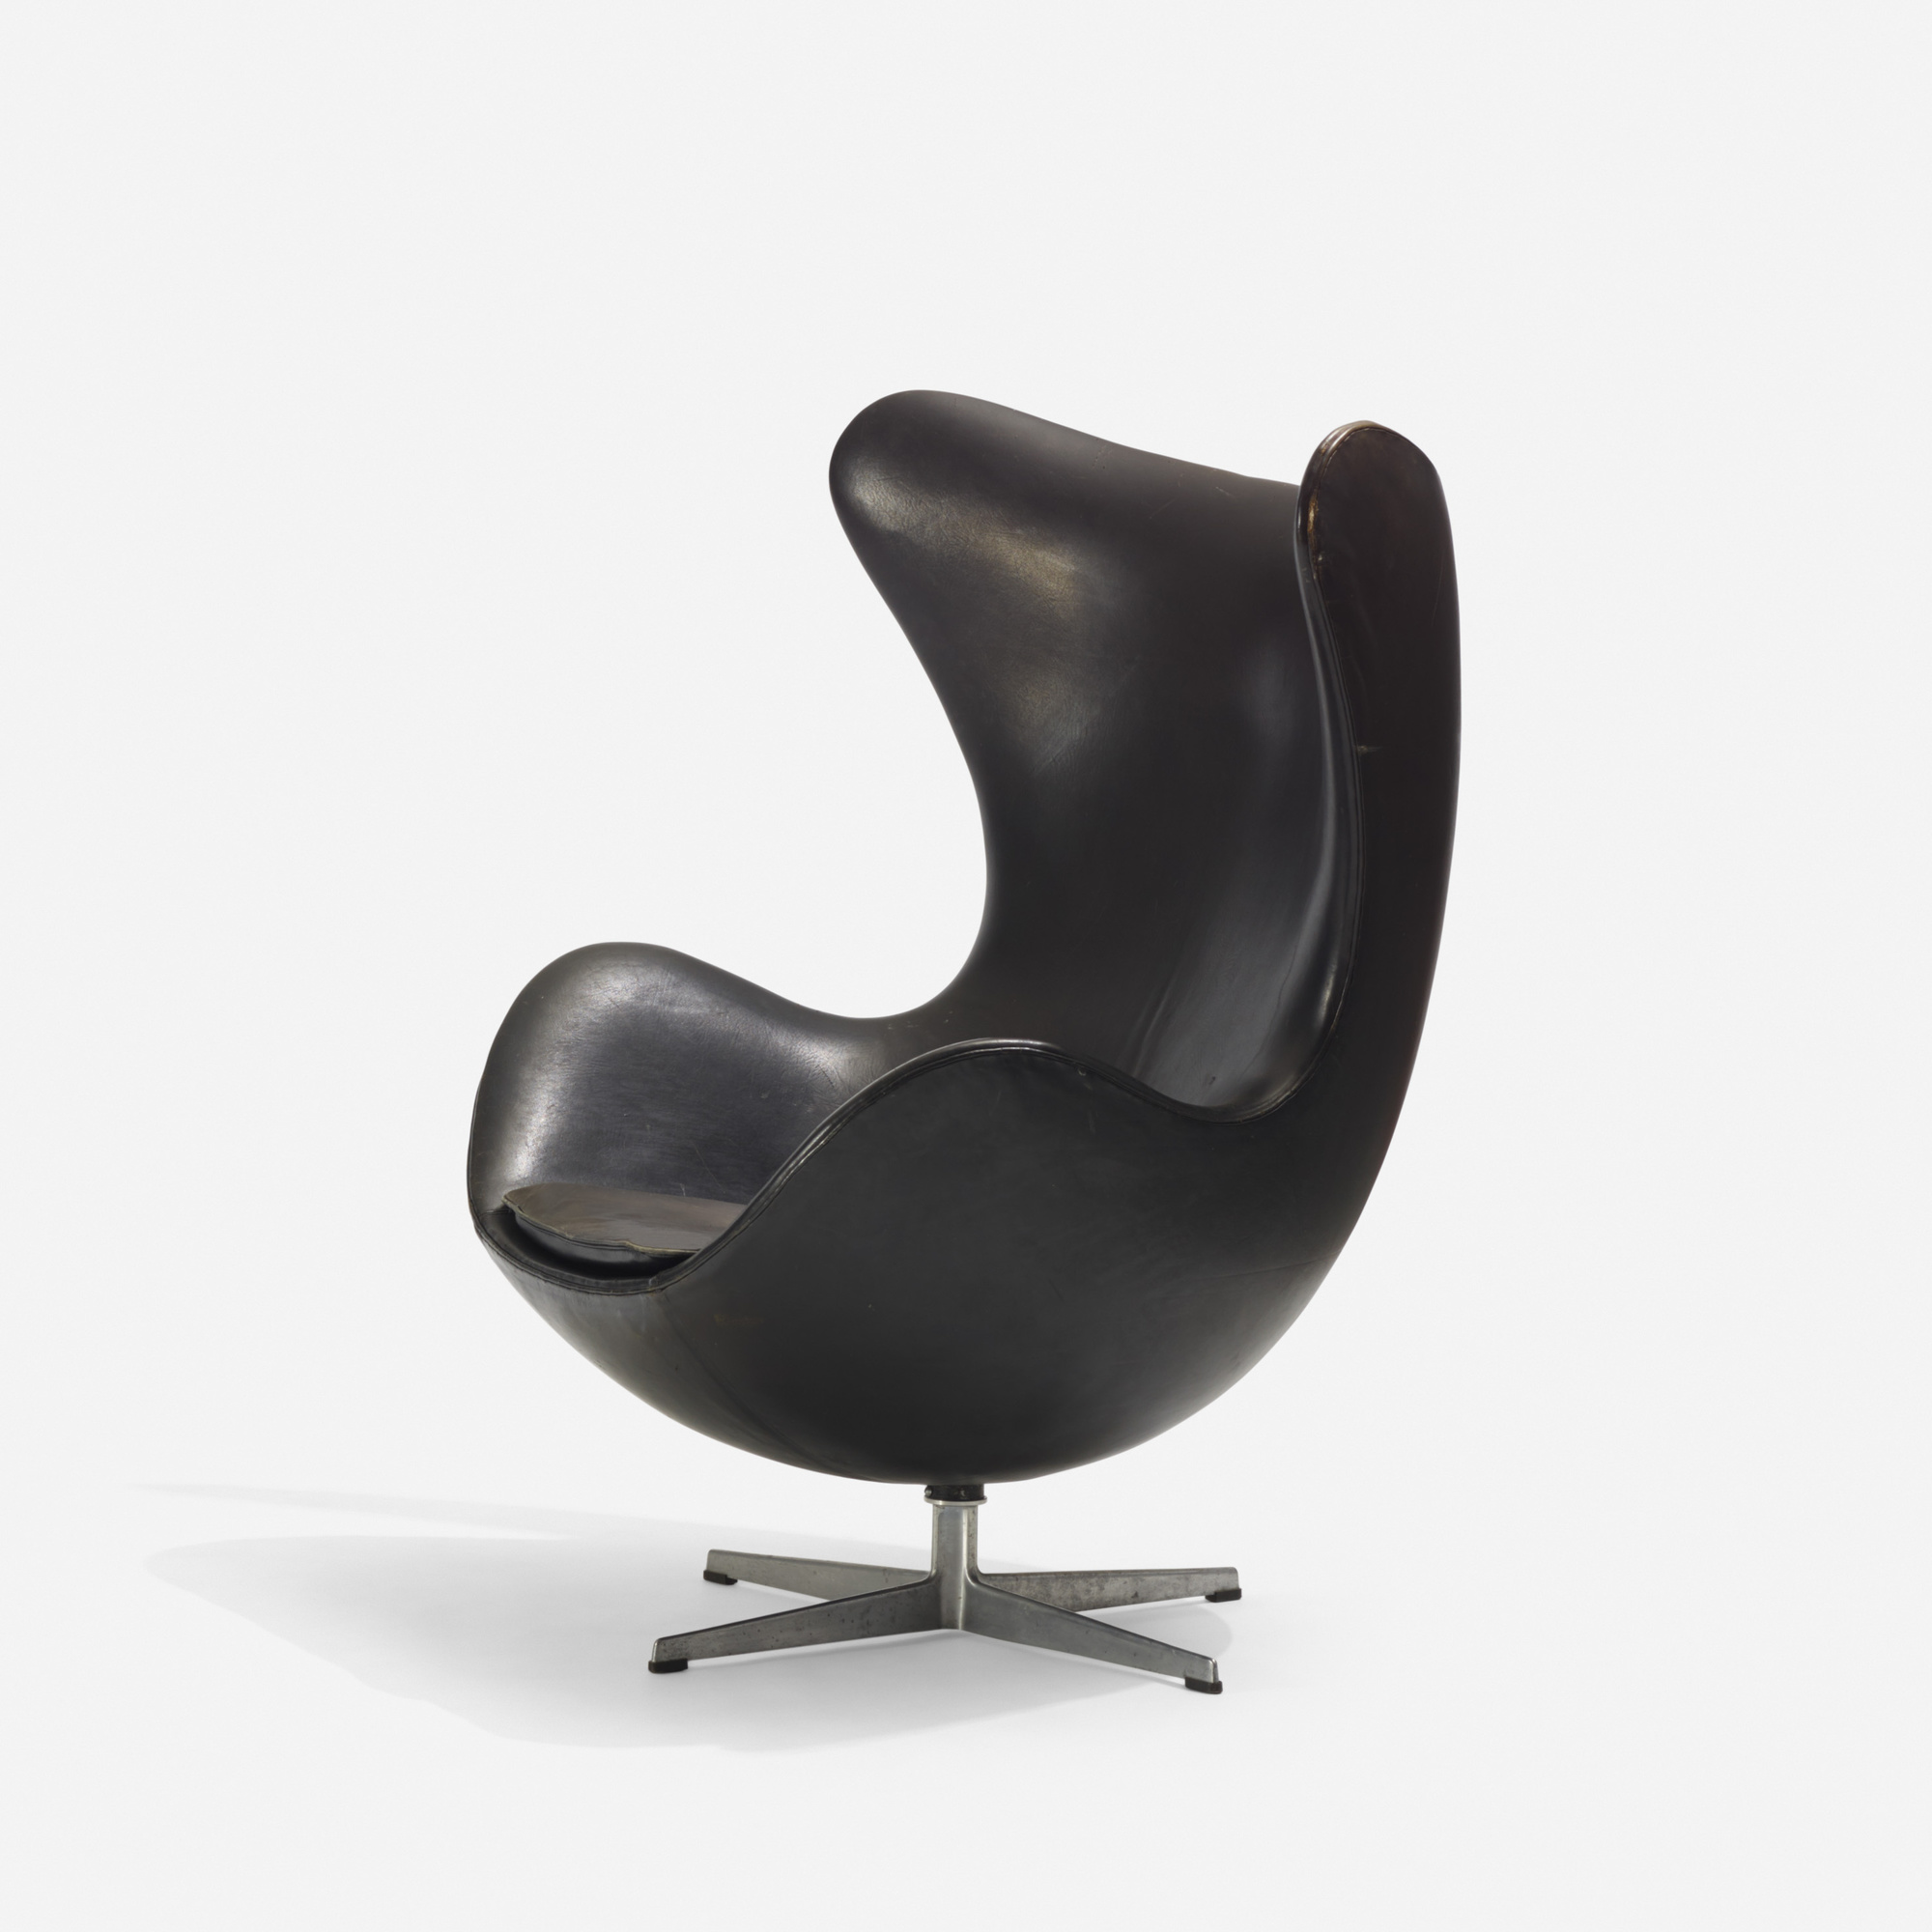 110: Arne Jacobsen / Egg chair (1 of 2)